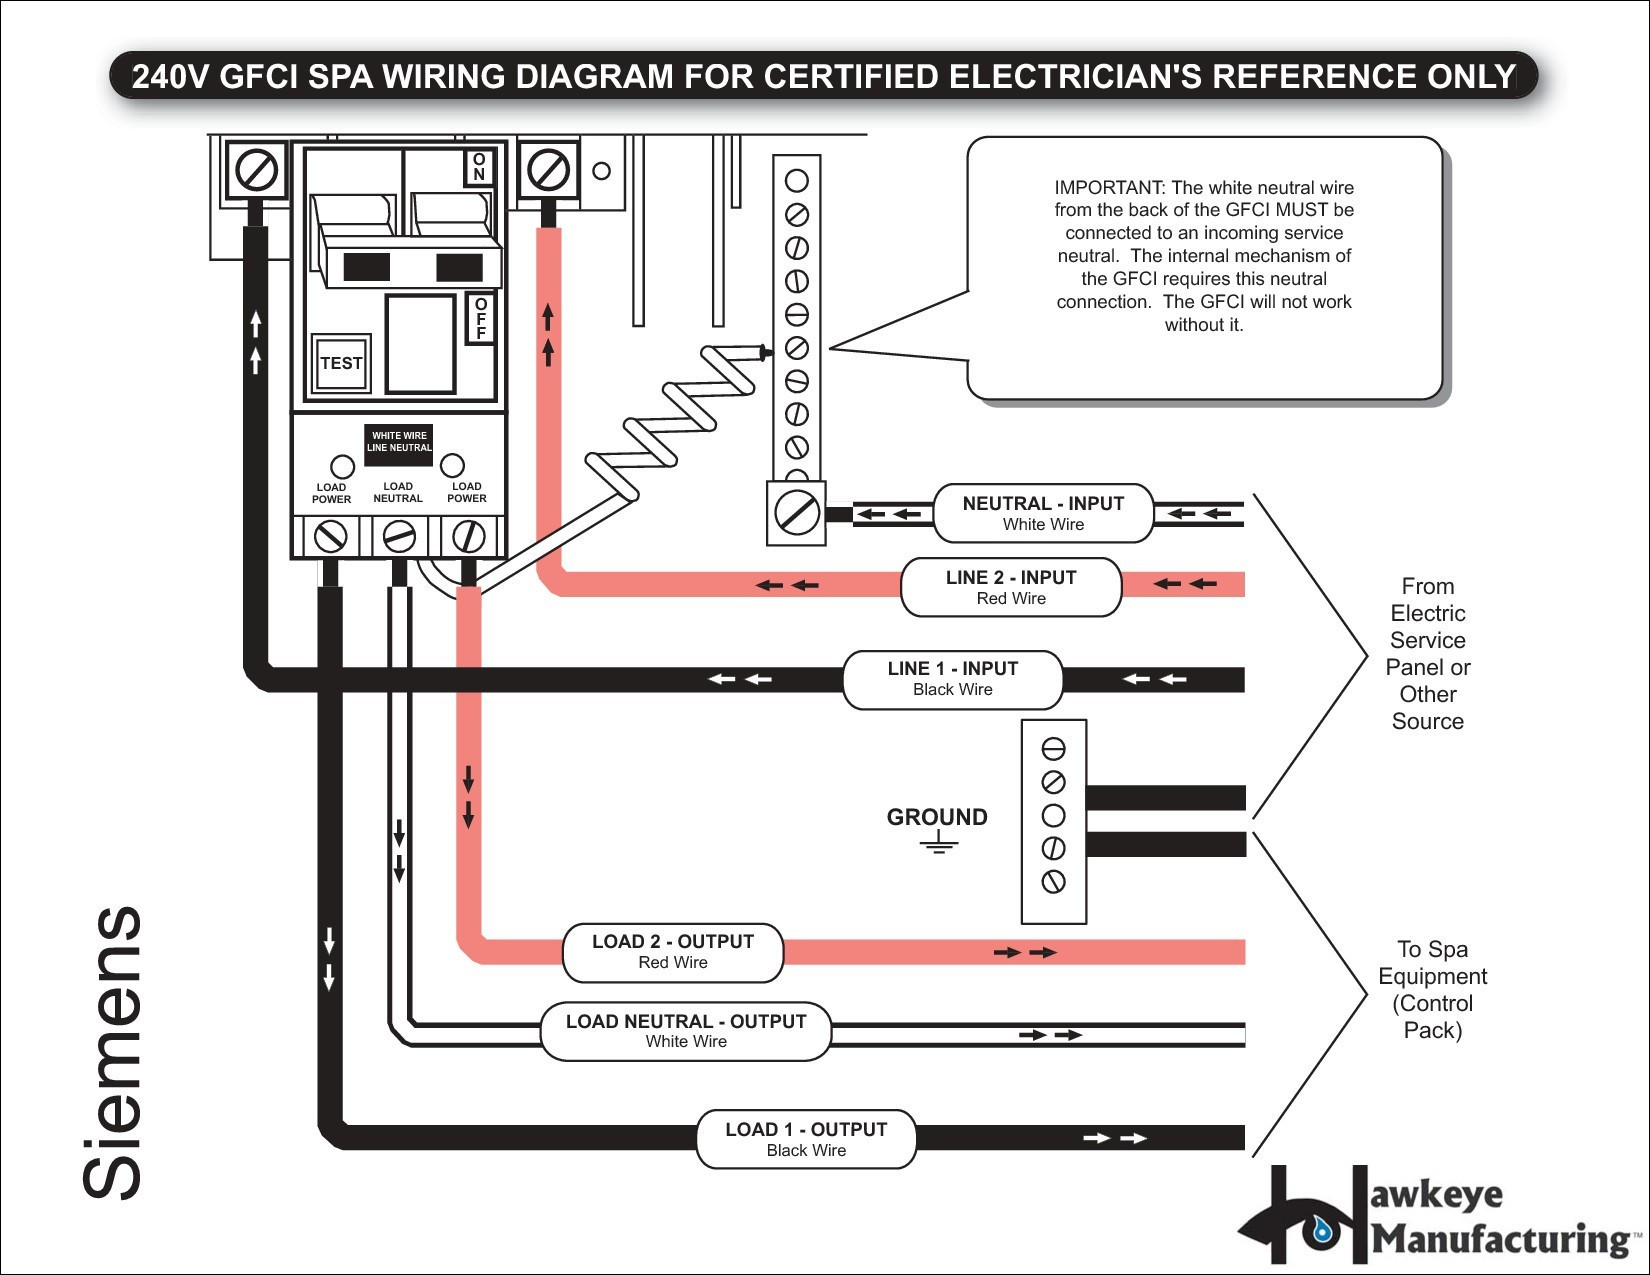 Gfci Breaker Wiring Diagram Valid Wiring Diagram Gfci Outlet Valid 2 Pole Gfci Breaker Wiring Diagram